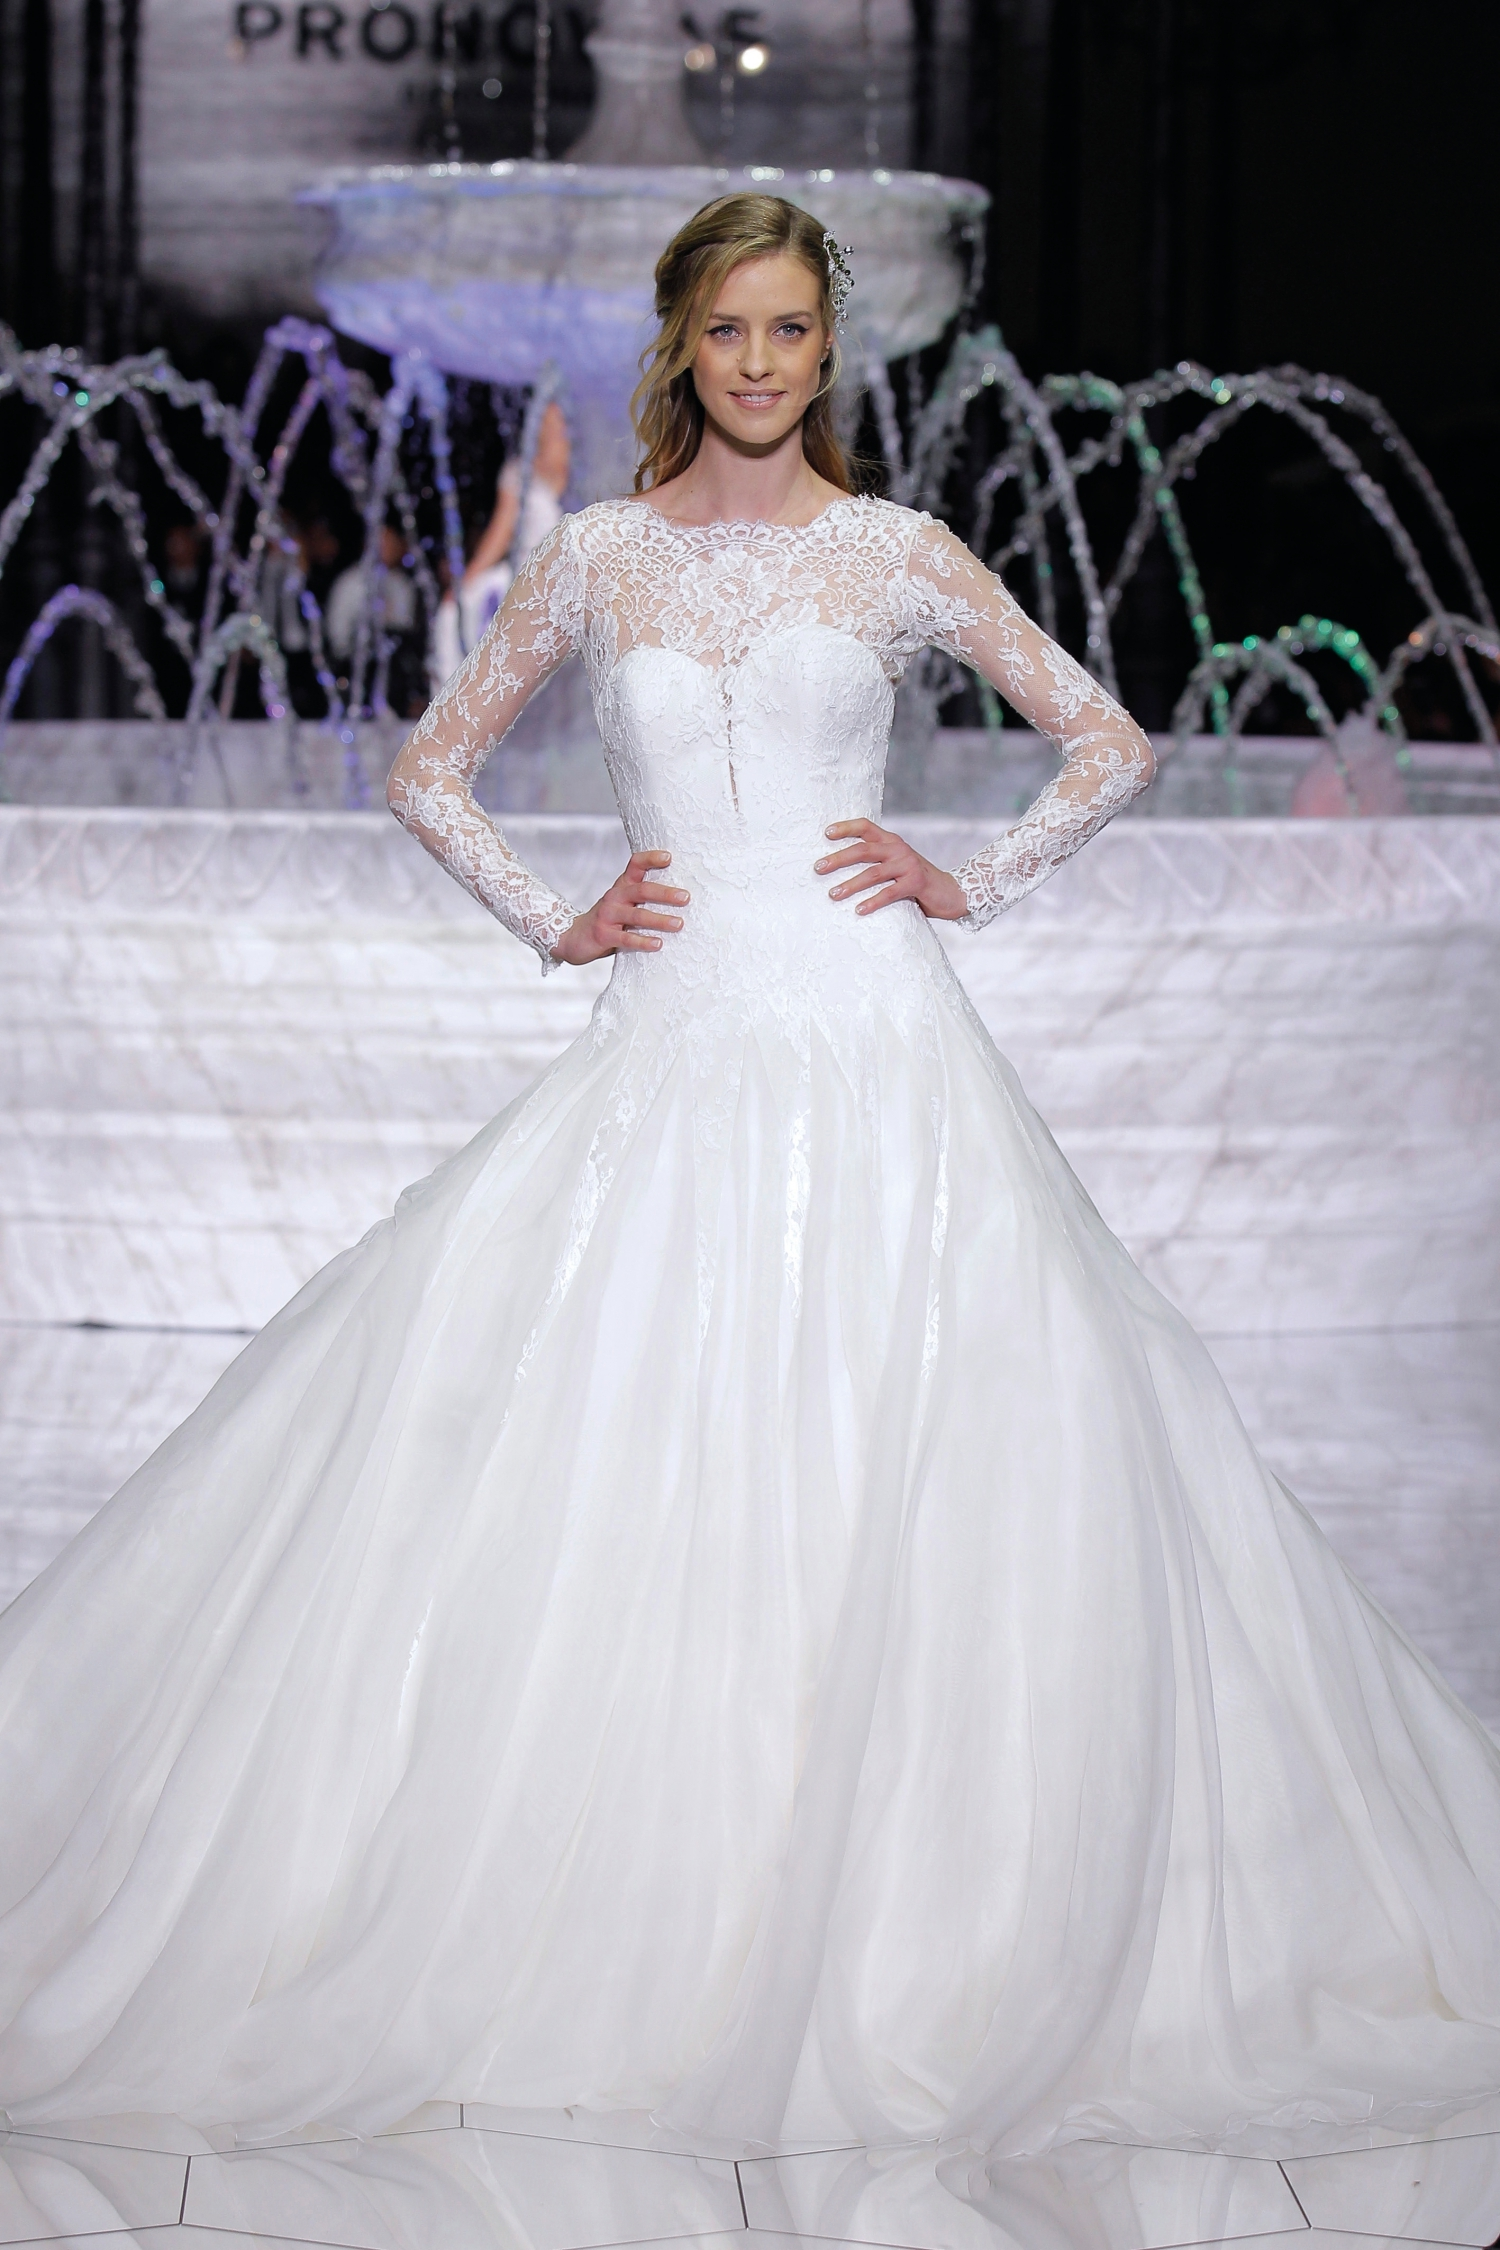 1-PRONOVIAS FASHION SHOW_Roncel